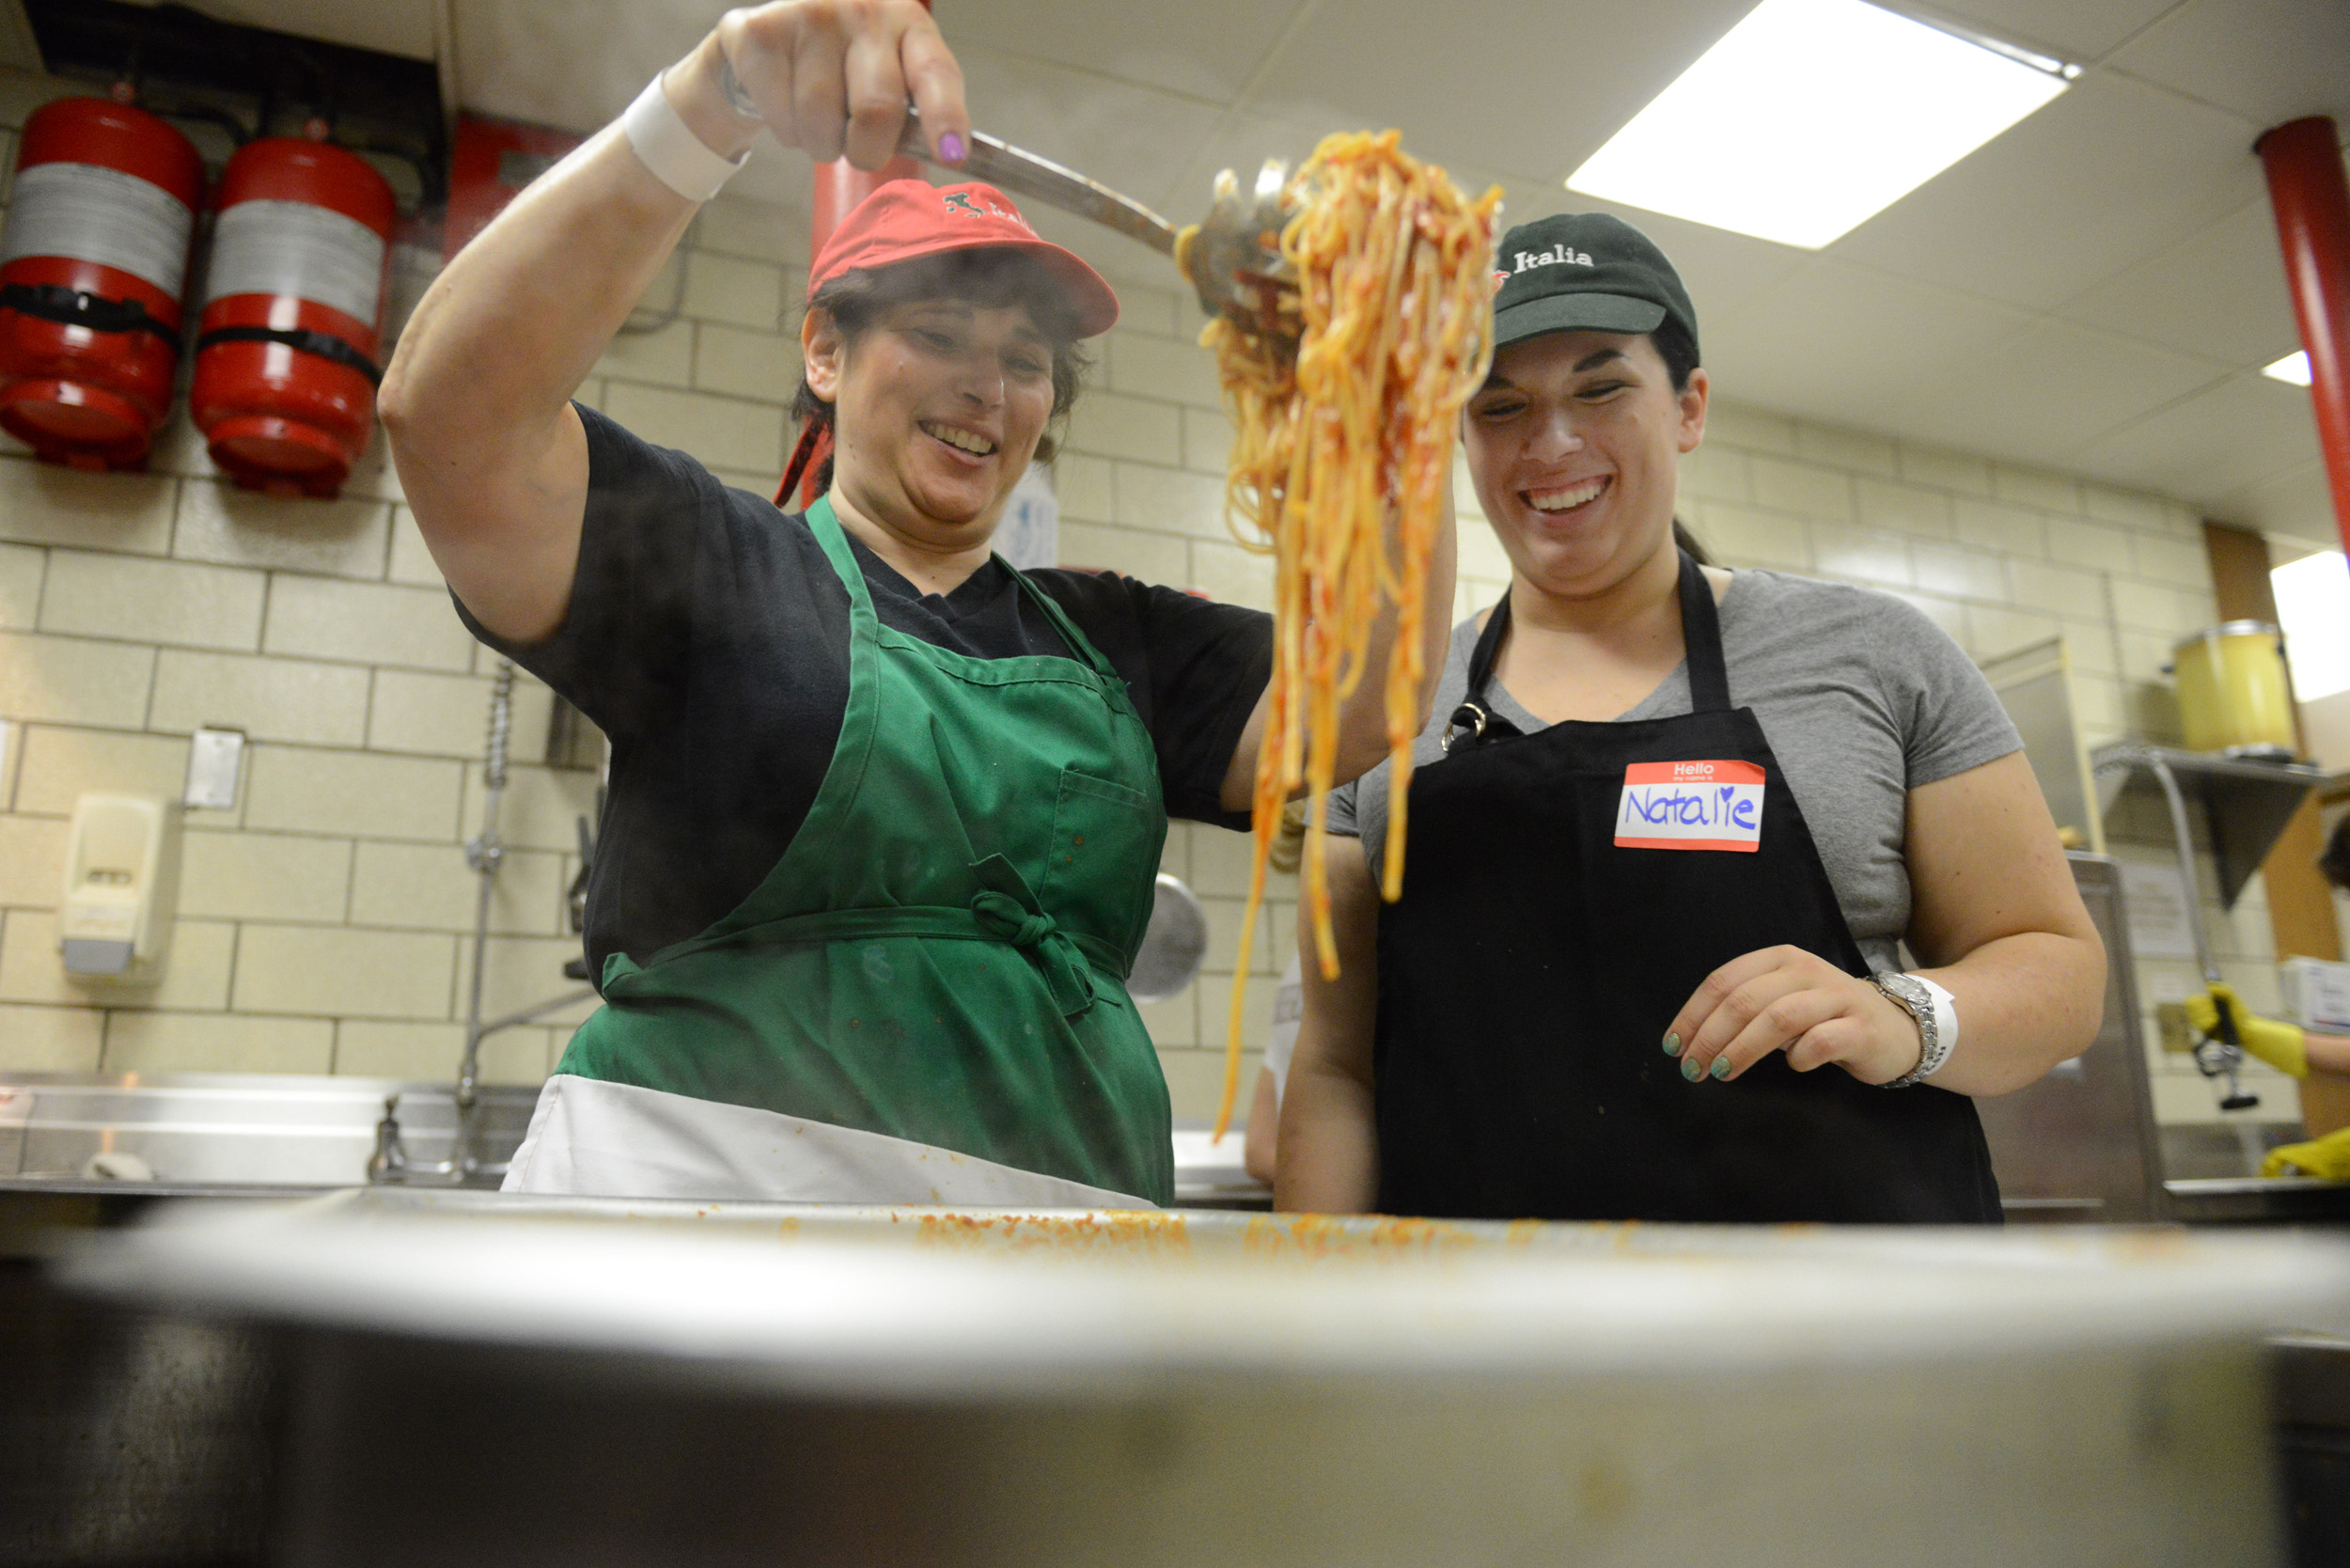 Nancy Brock laughs with her daughter Natalie Brock (right) as they dish out spaghetti to be served at Festa Italiana at Mount Saint Peter Parish in New Kensington on Thursday, July 30, 2015.